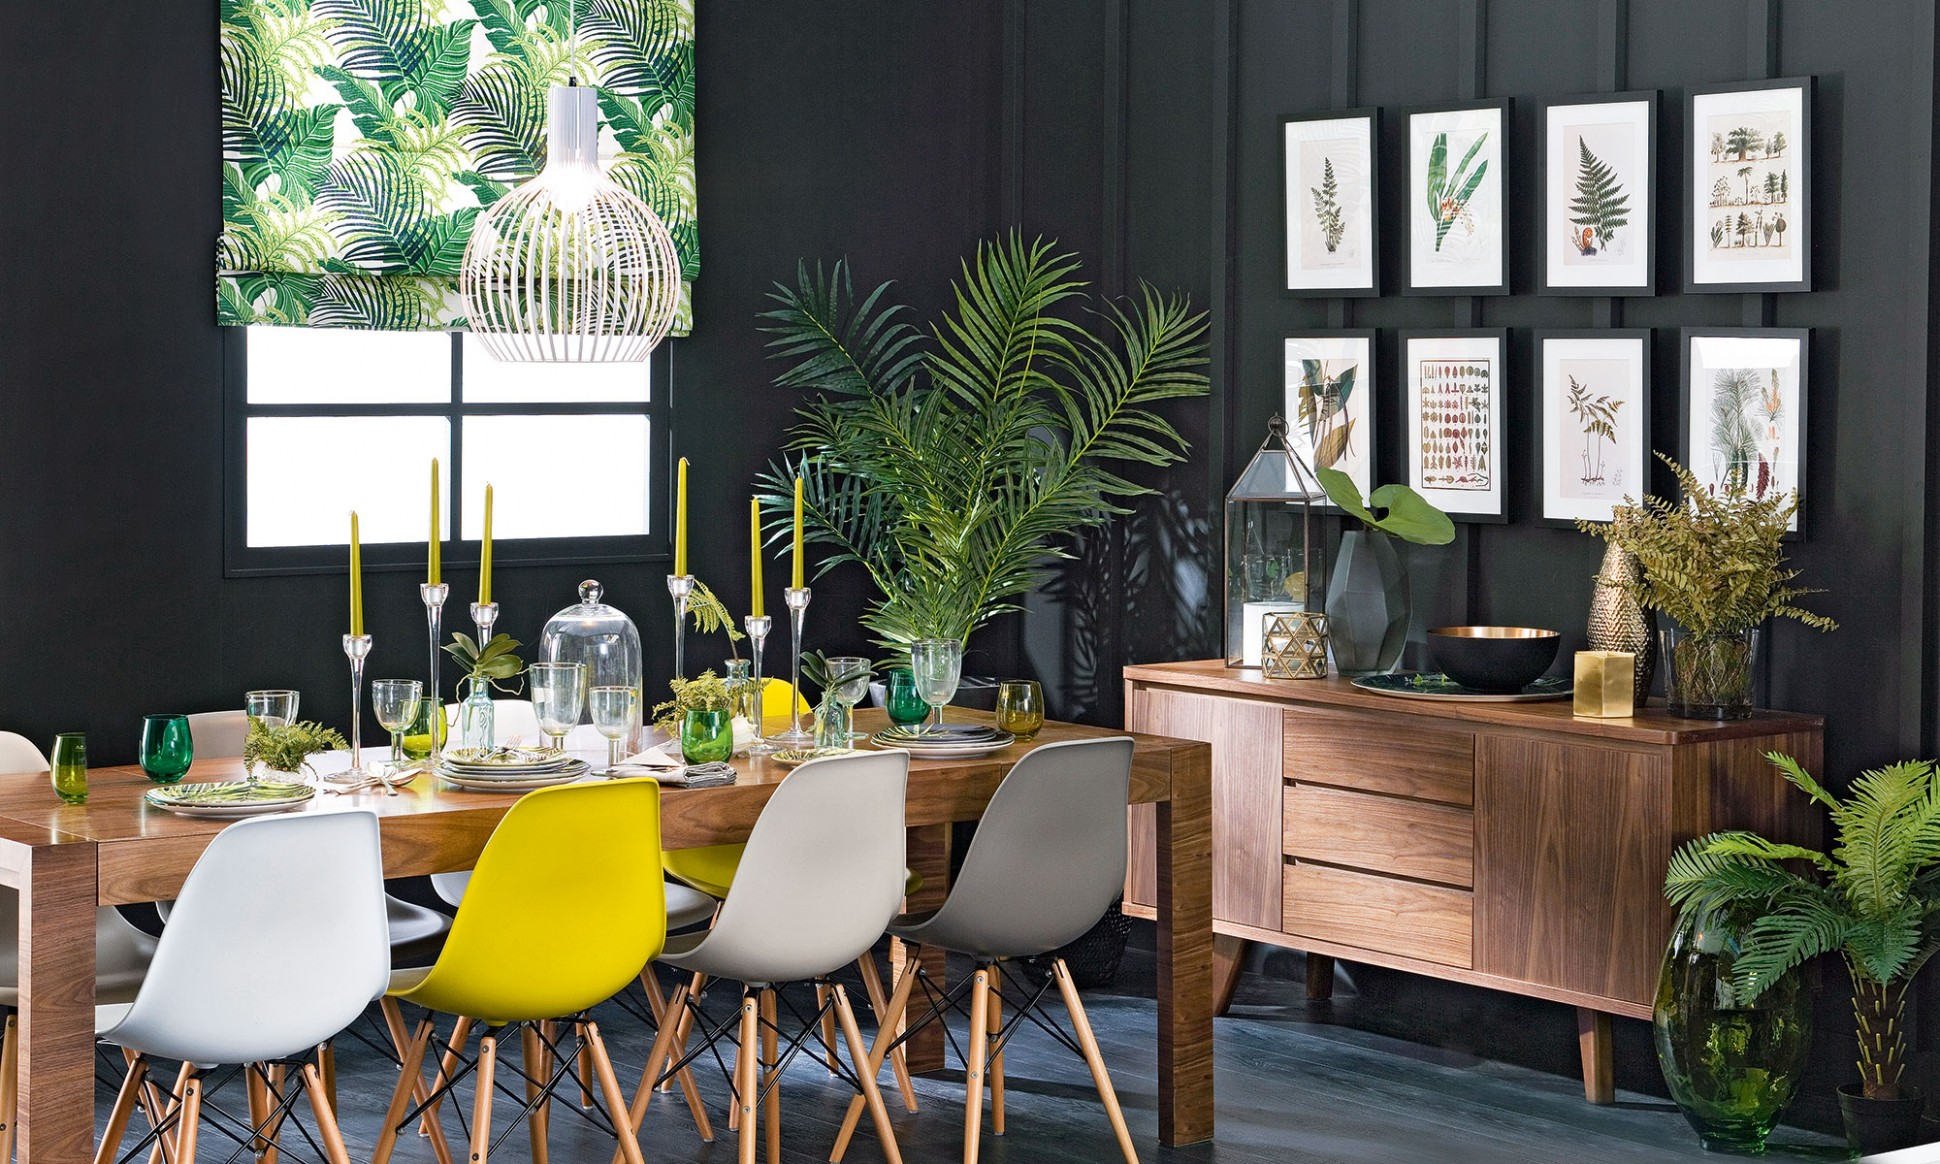 Budget dining room ideas – serve up a fresh look on a shoestring - Dining Room Ideas With Plants